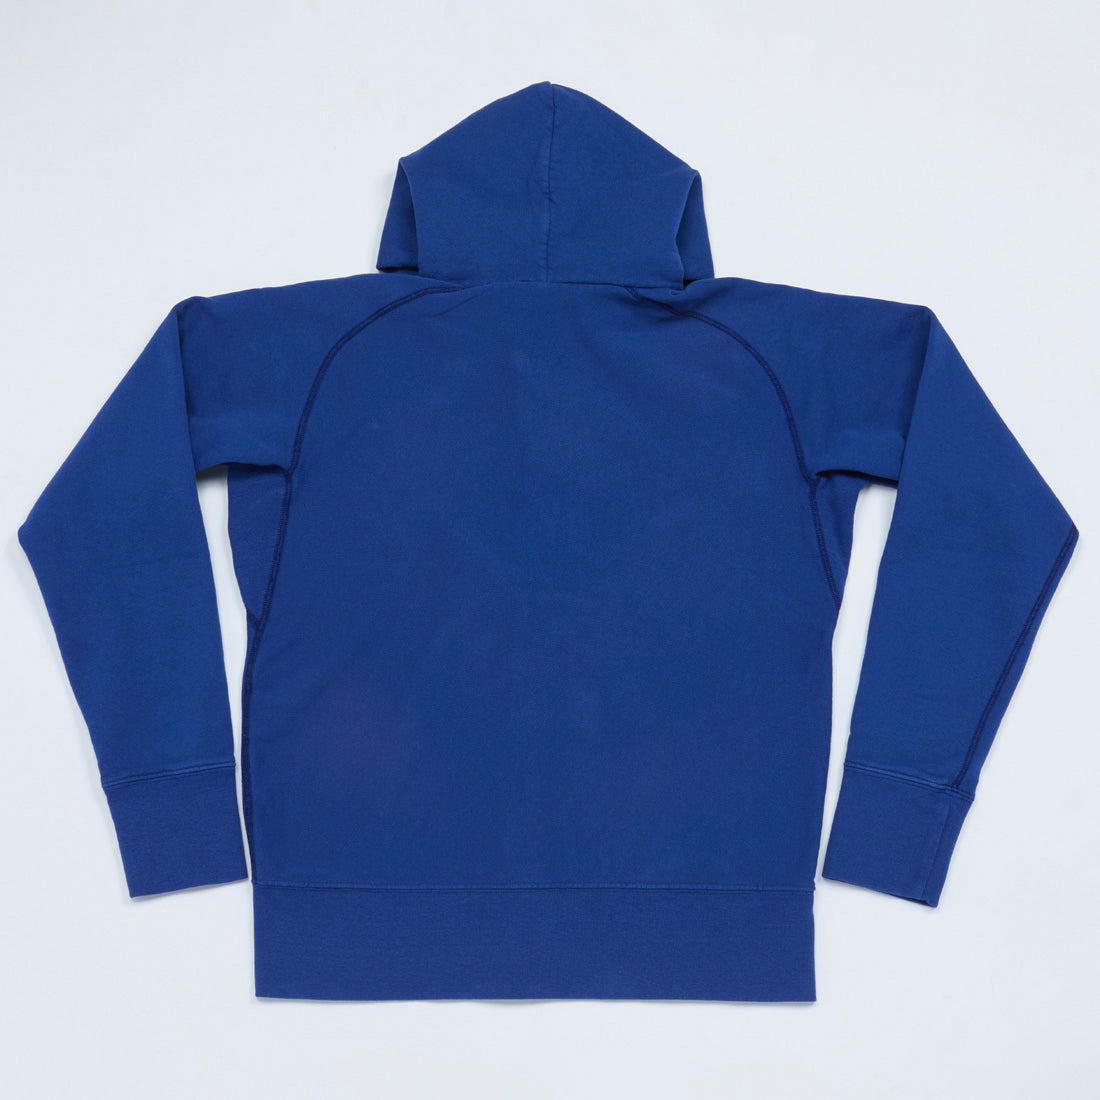 10 oz. Hooded Sweatshirt (Blue)